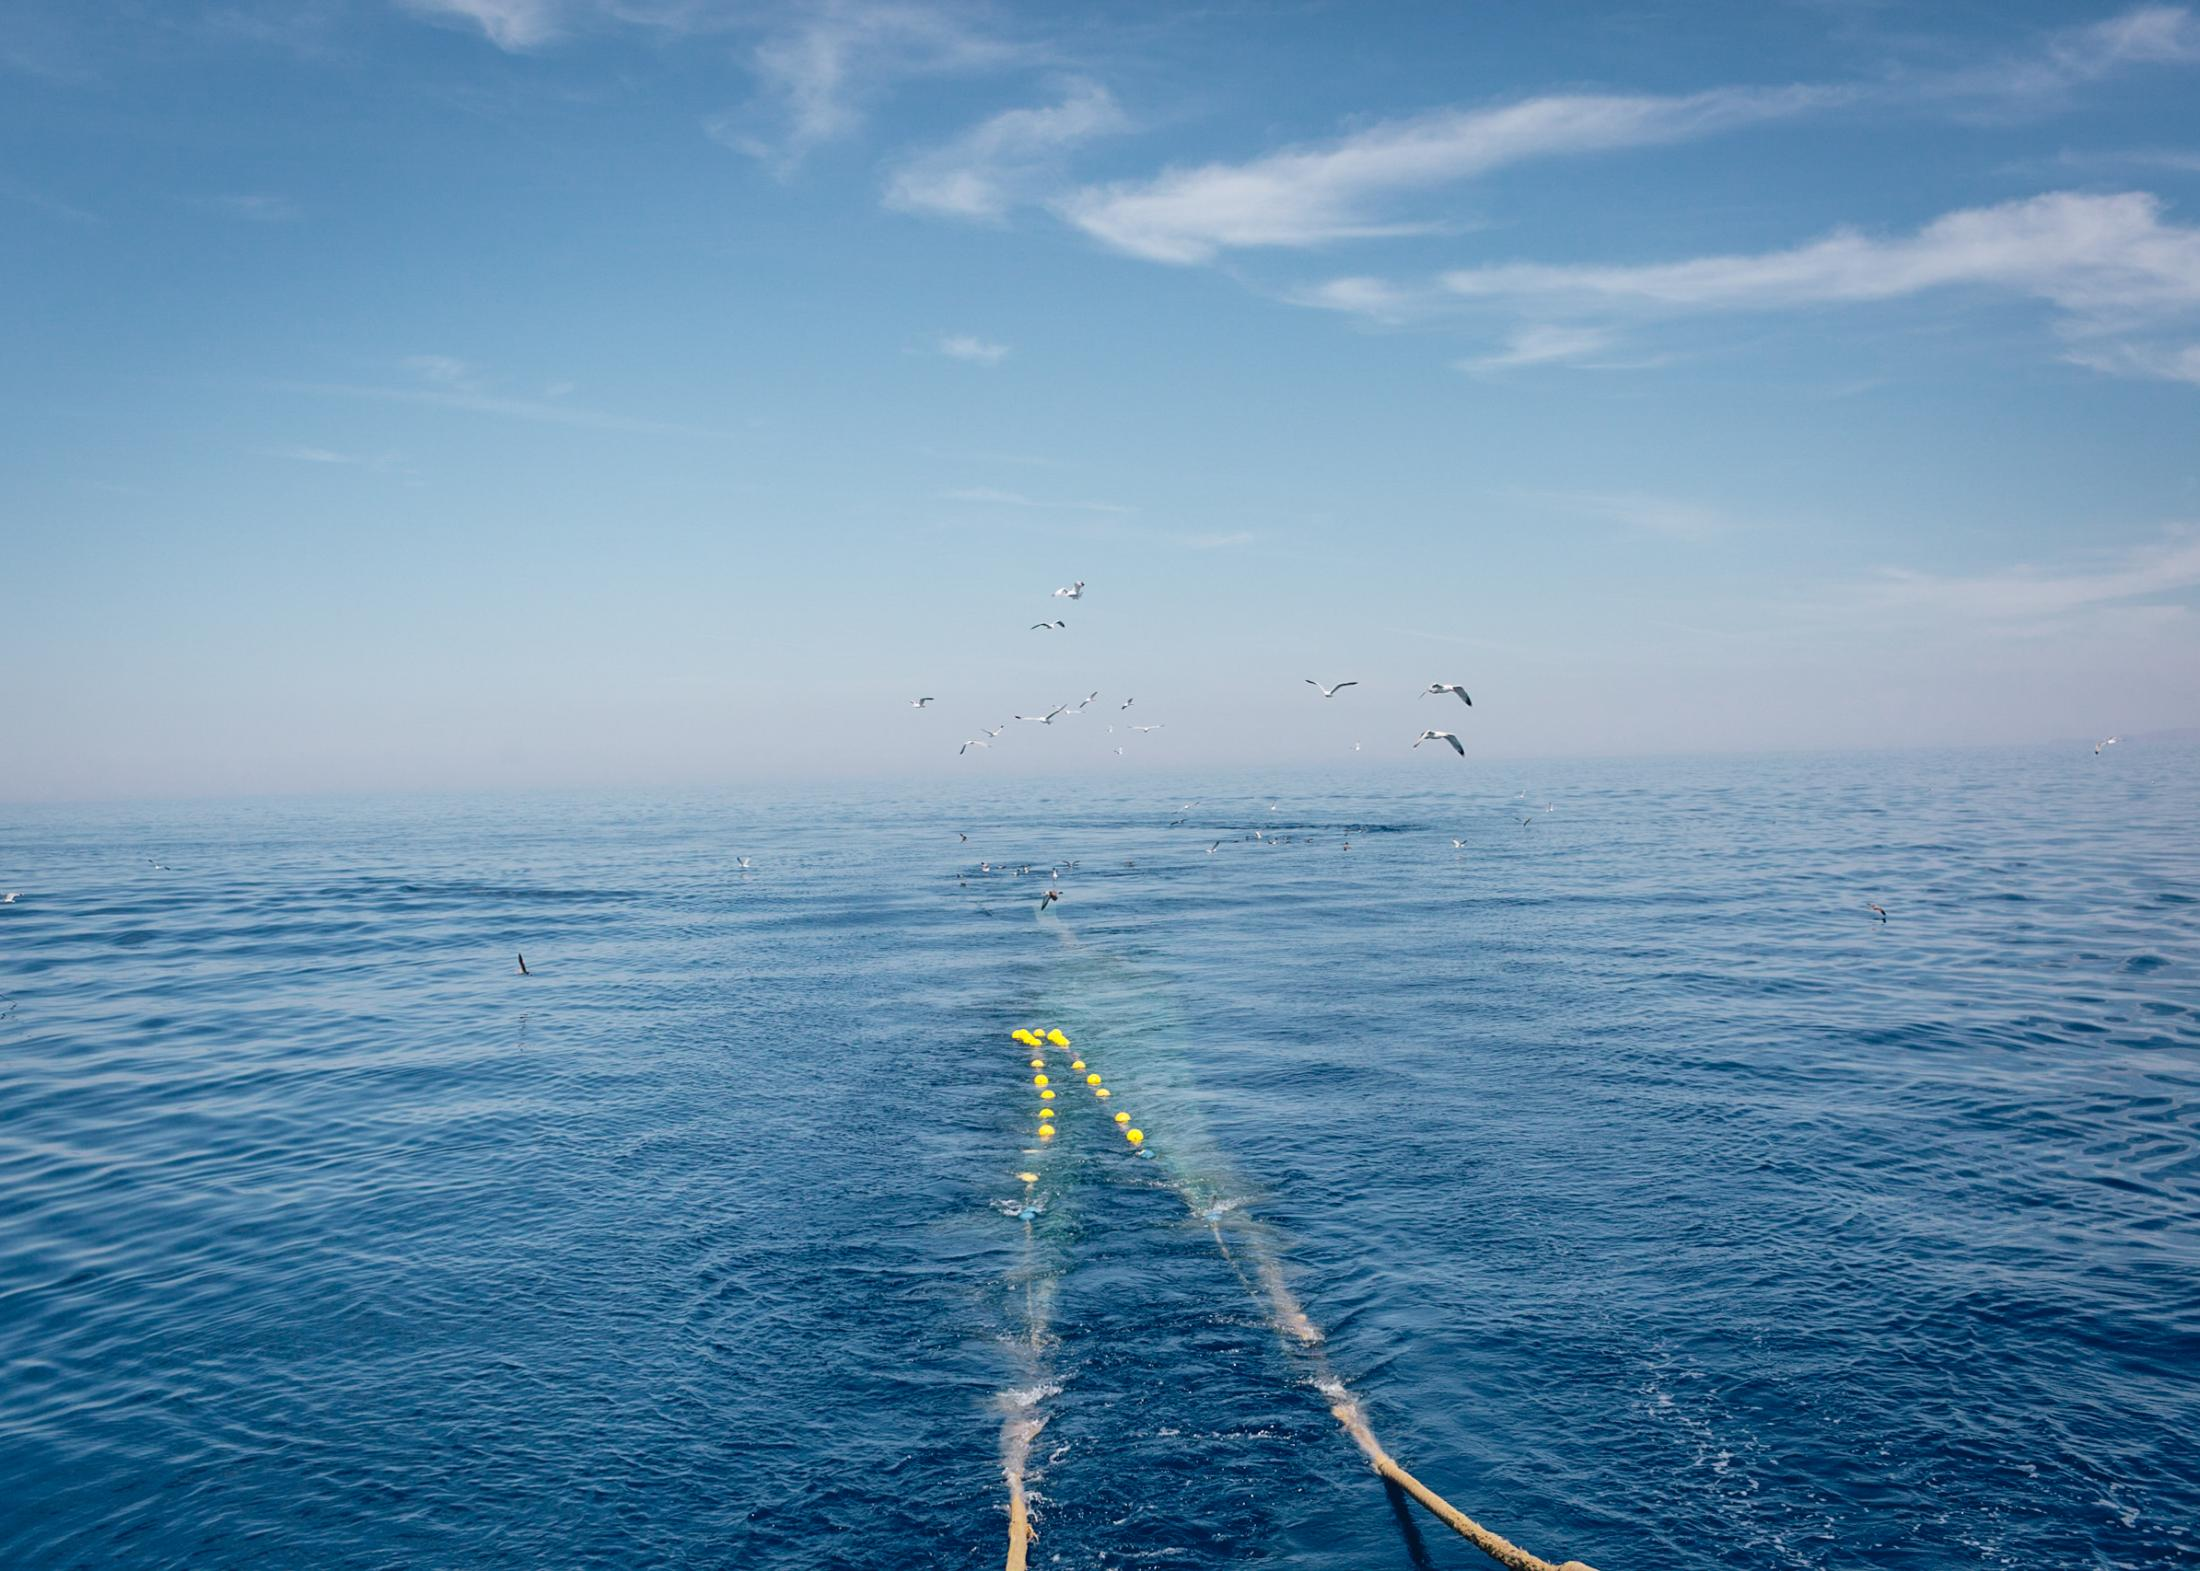 The net of a fishing boat is cast in the early morning.